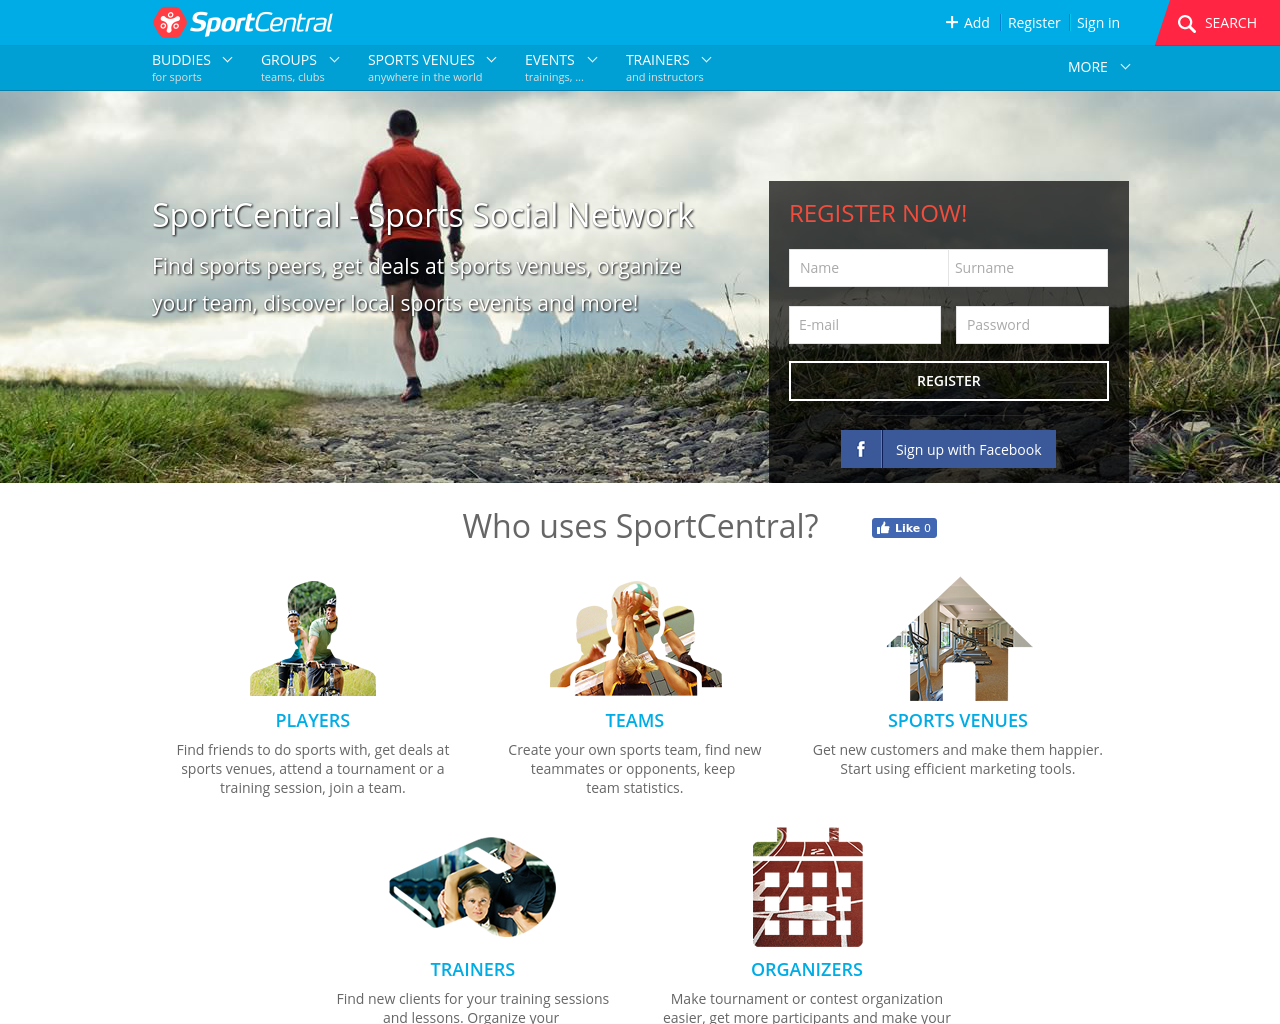 SportCentral-Advertising-Reviews-Pricing